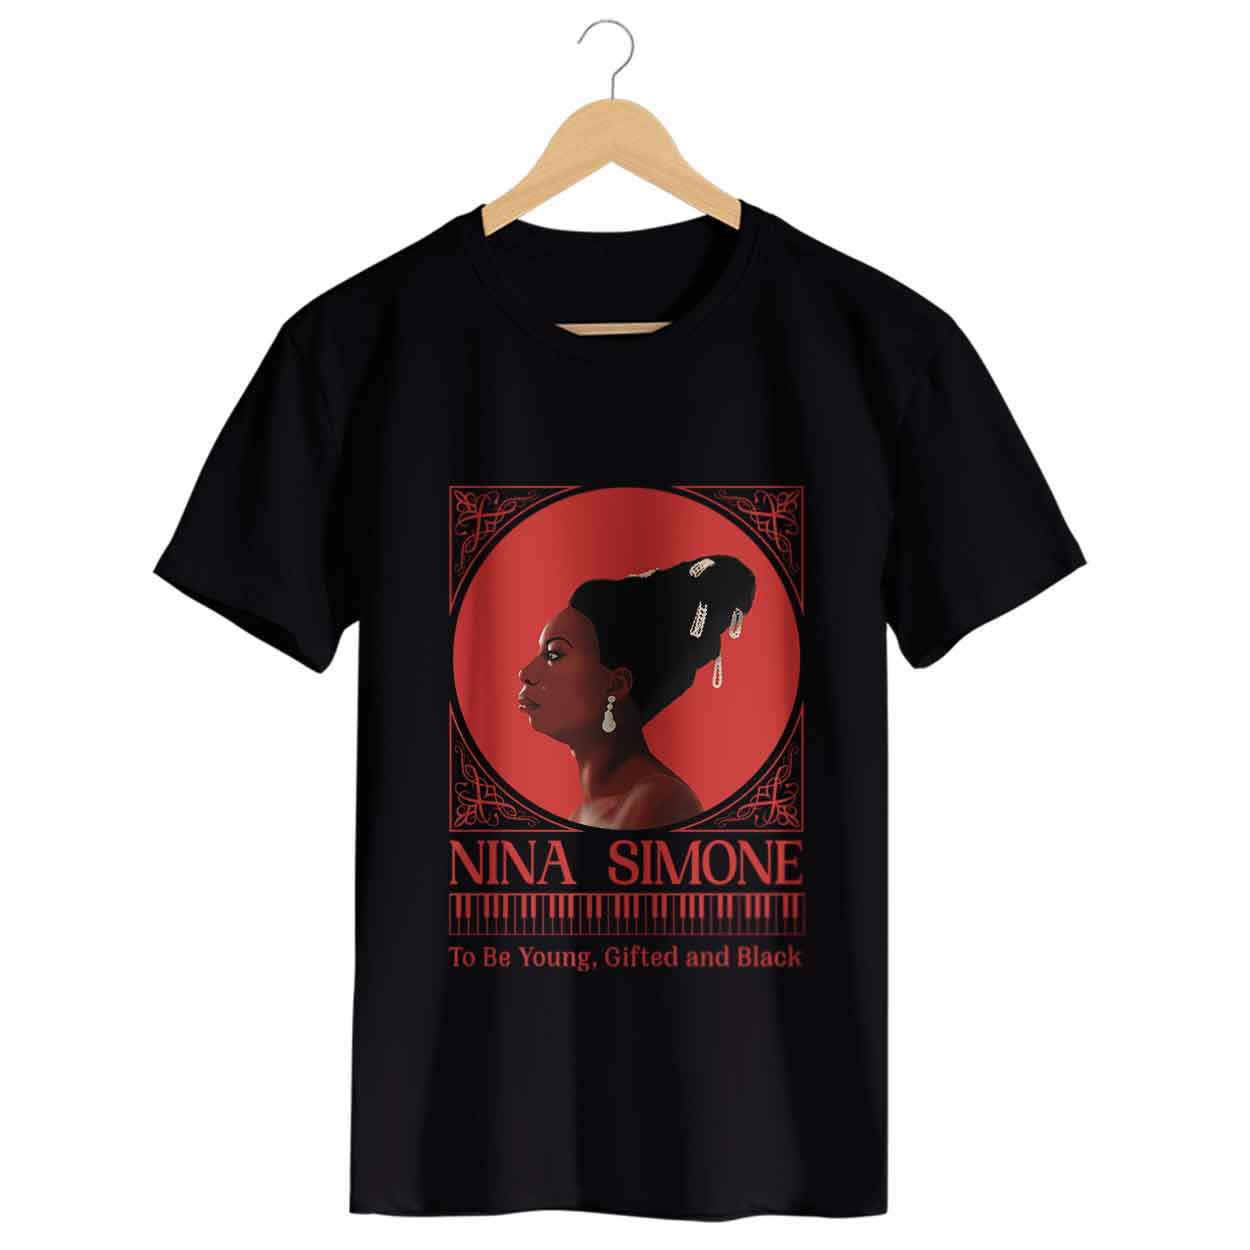 Camiseta To Be Young, Gifted And Black - Nina Simone - Masculino